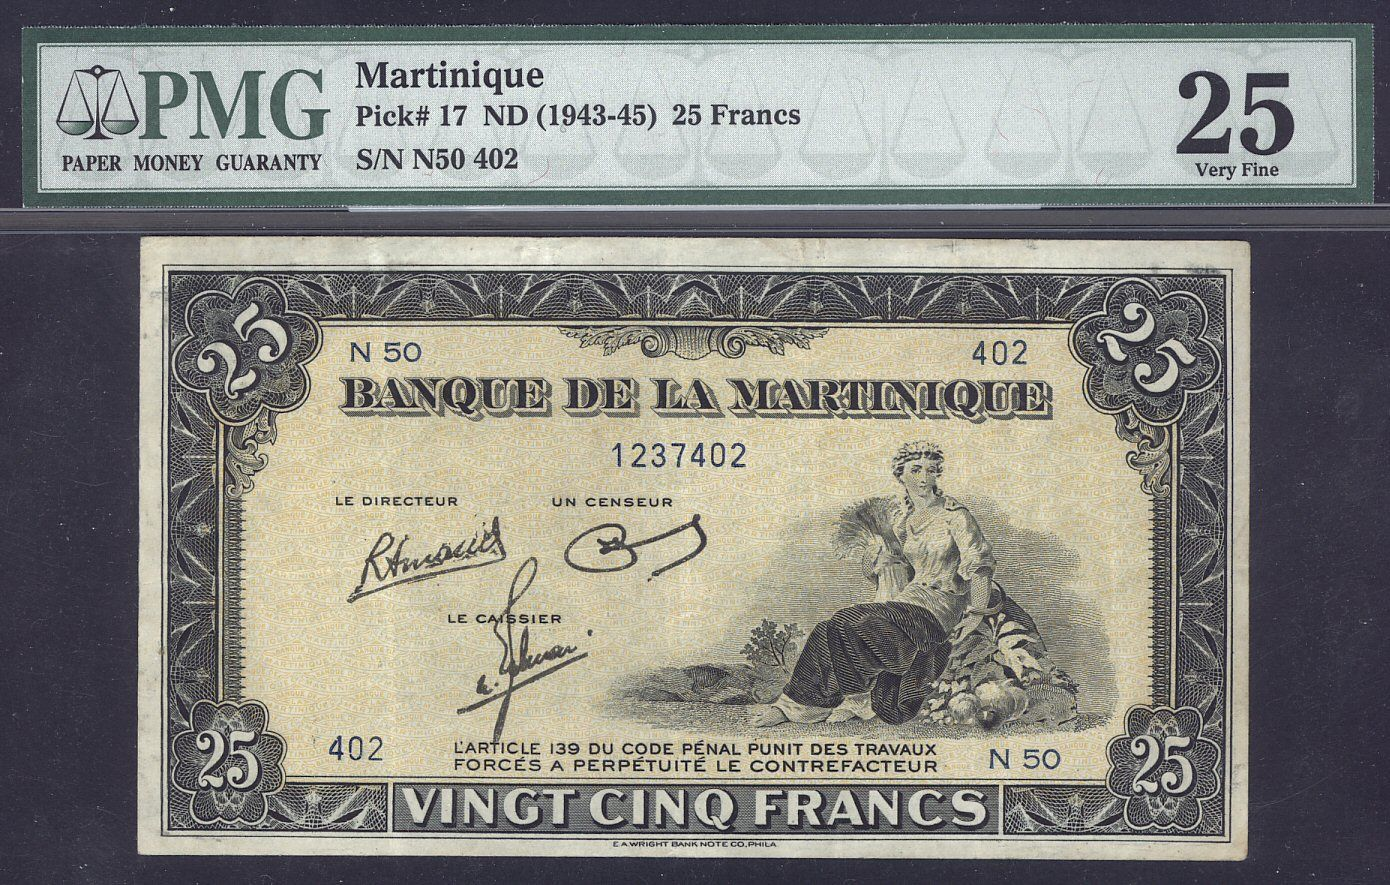 Currency Of Martinique 25 Francs Banknote 1943 1945 World War Ii Emergency Issue Issued By The Bank Banque De La